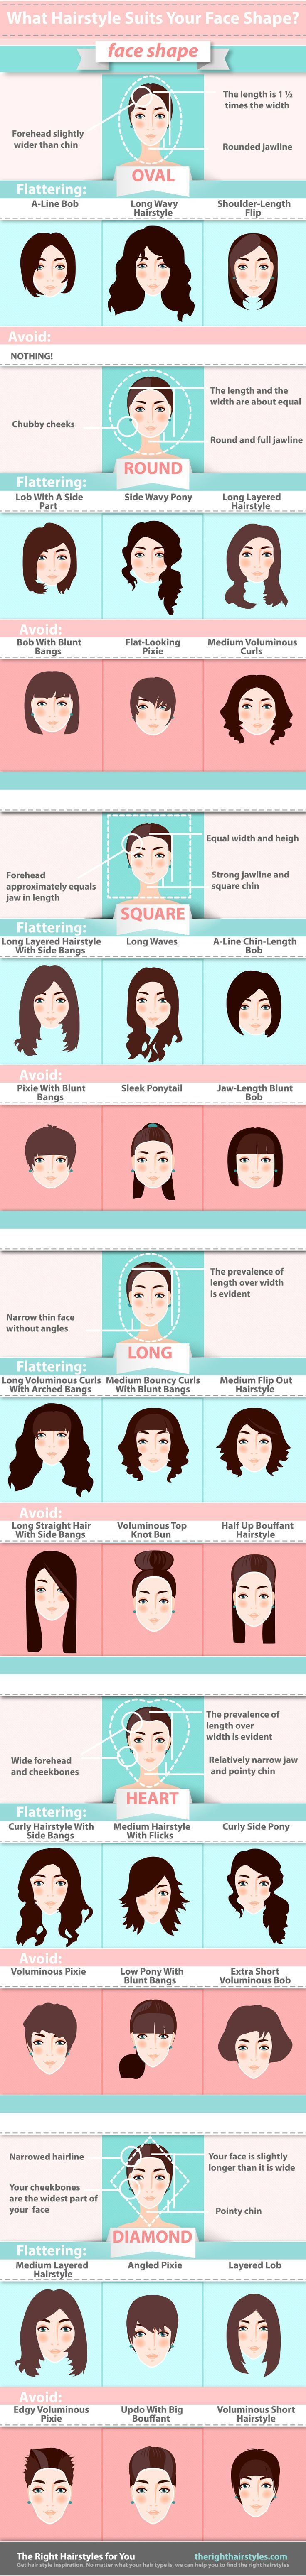 what hairstyle suits you according to your face shape